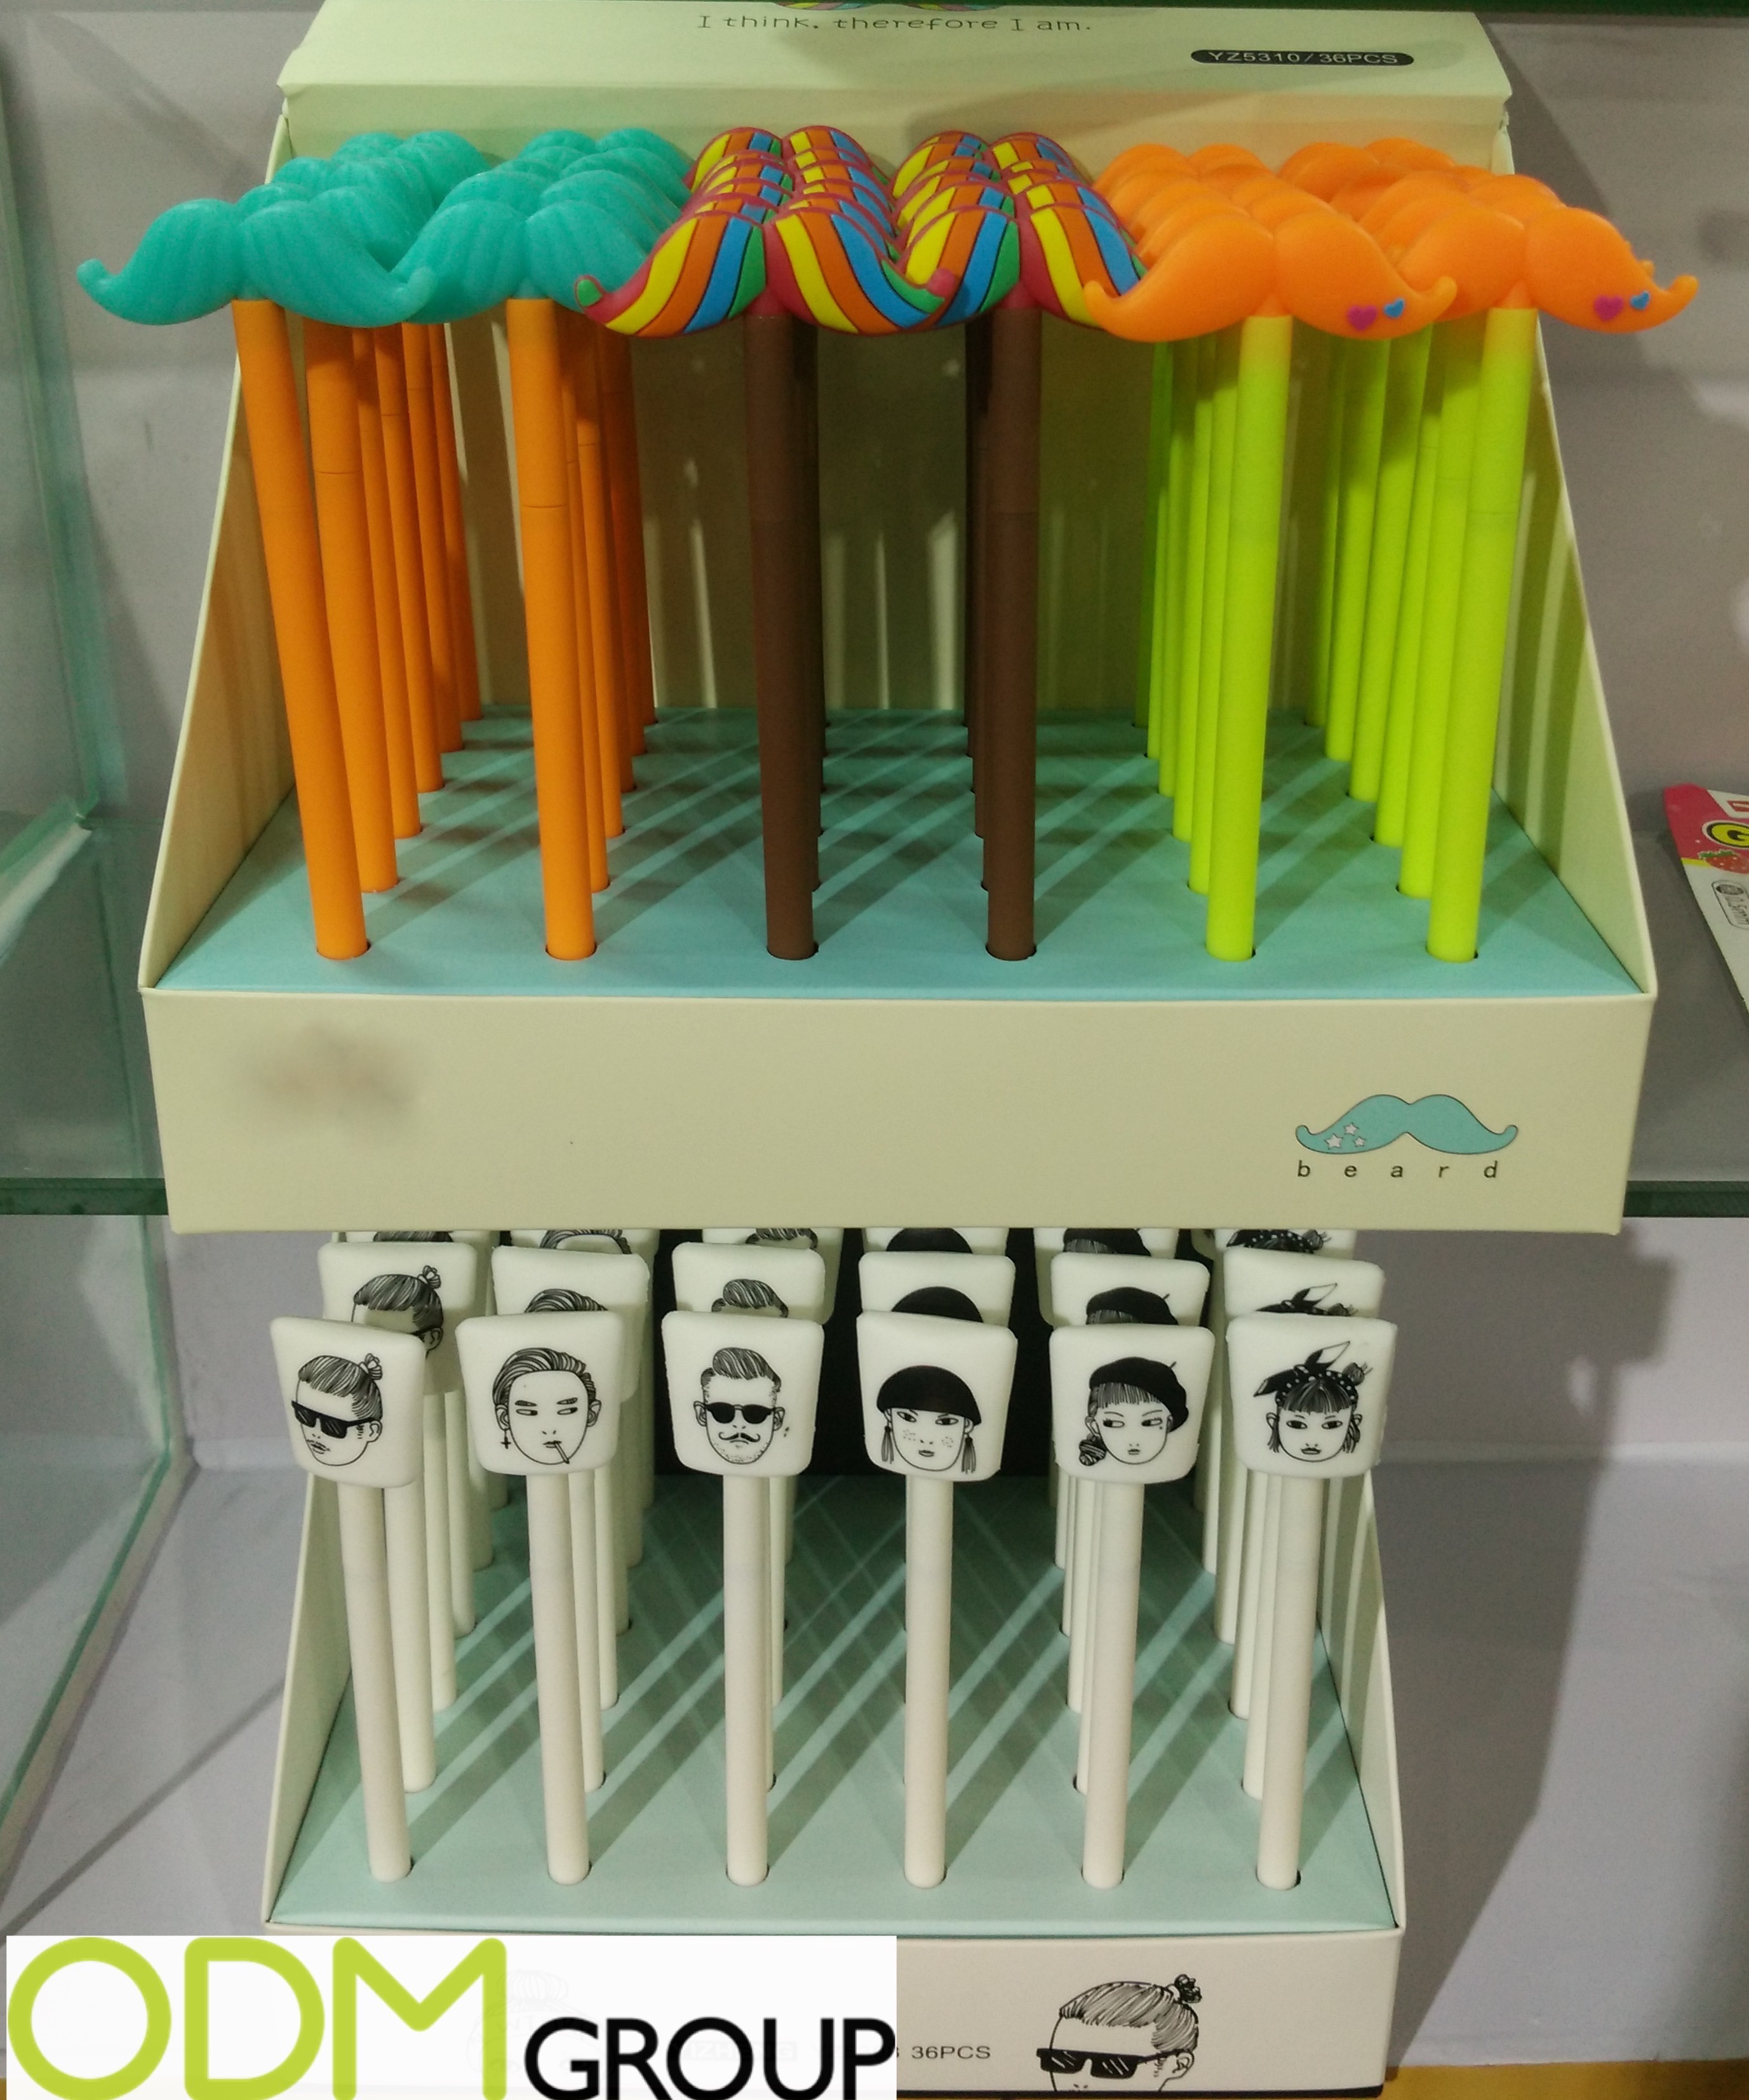 Stationery Promo Ideas – Pens with Customized Toppers